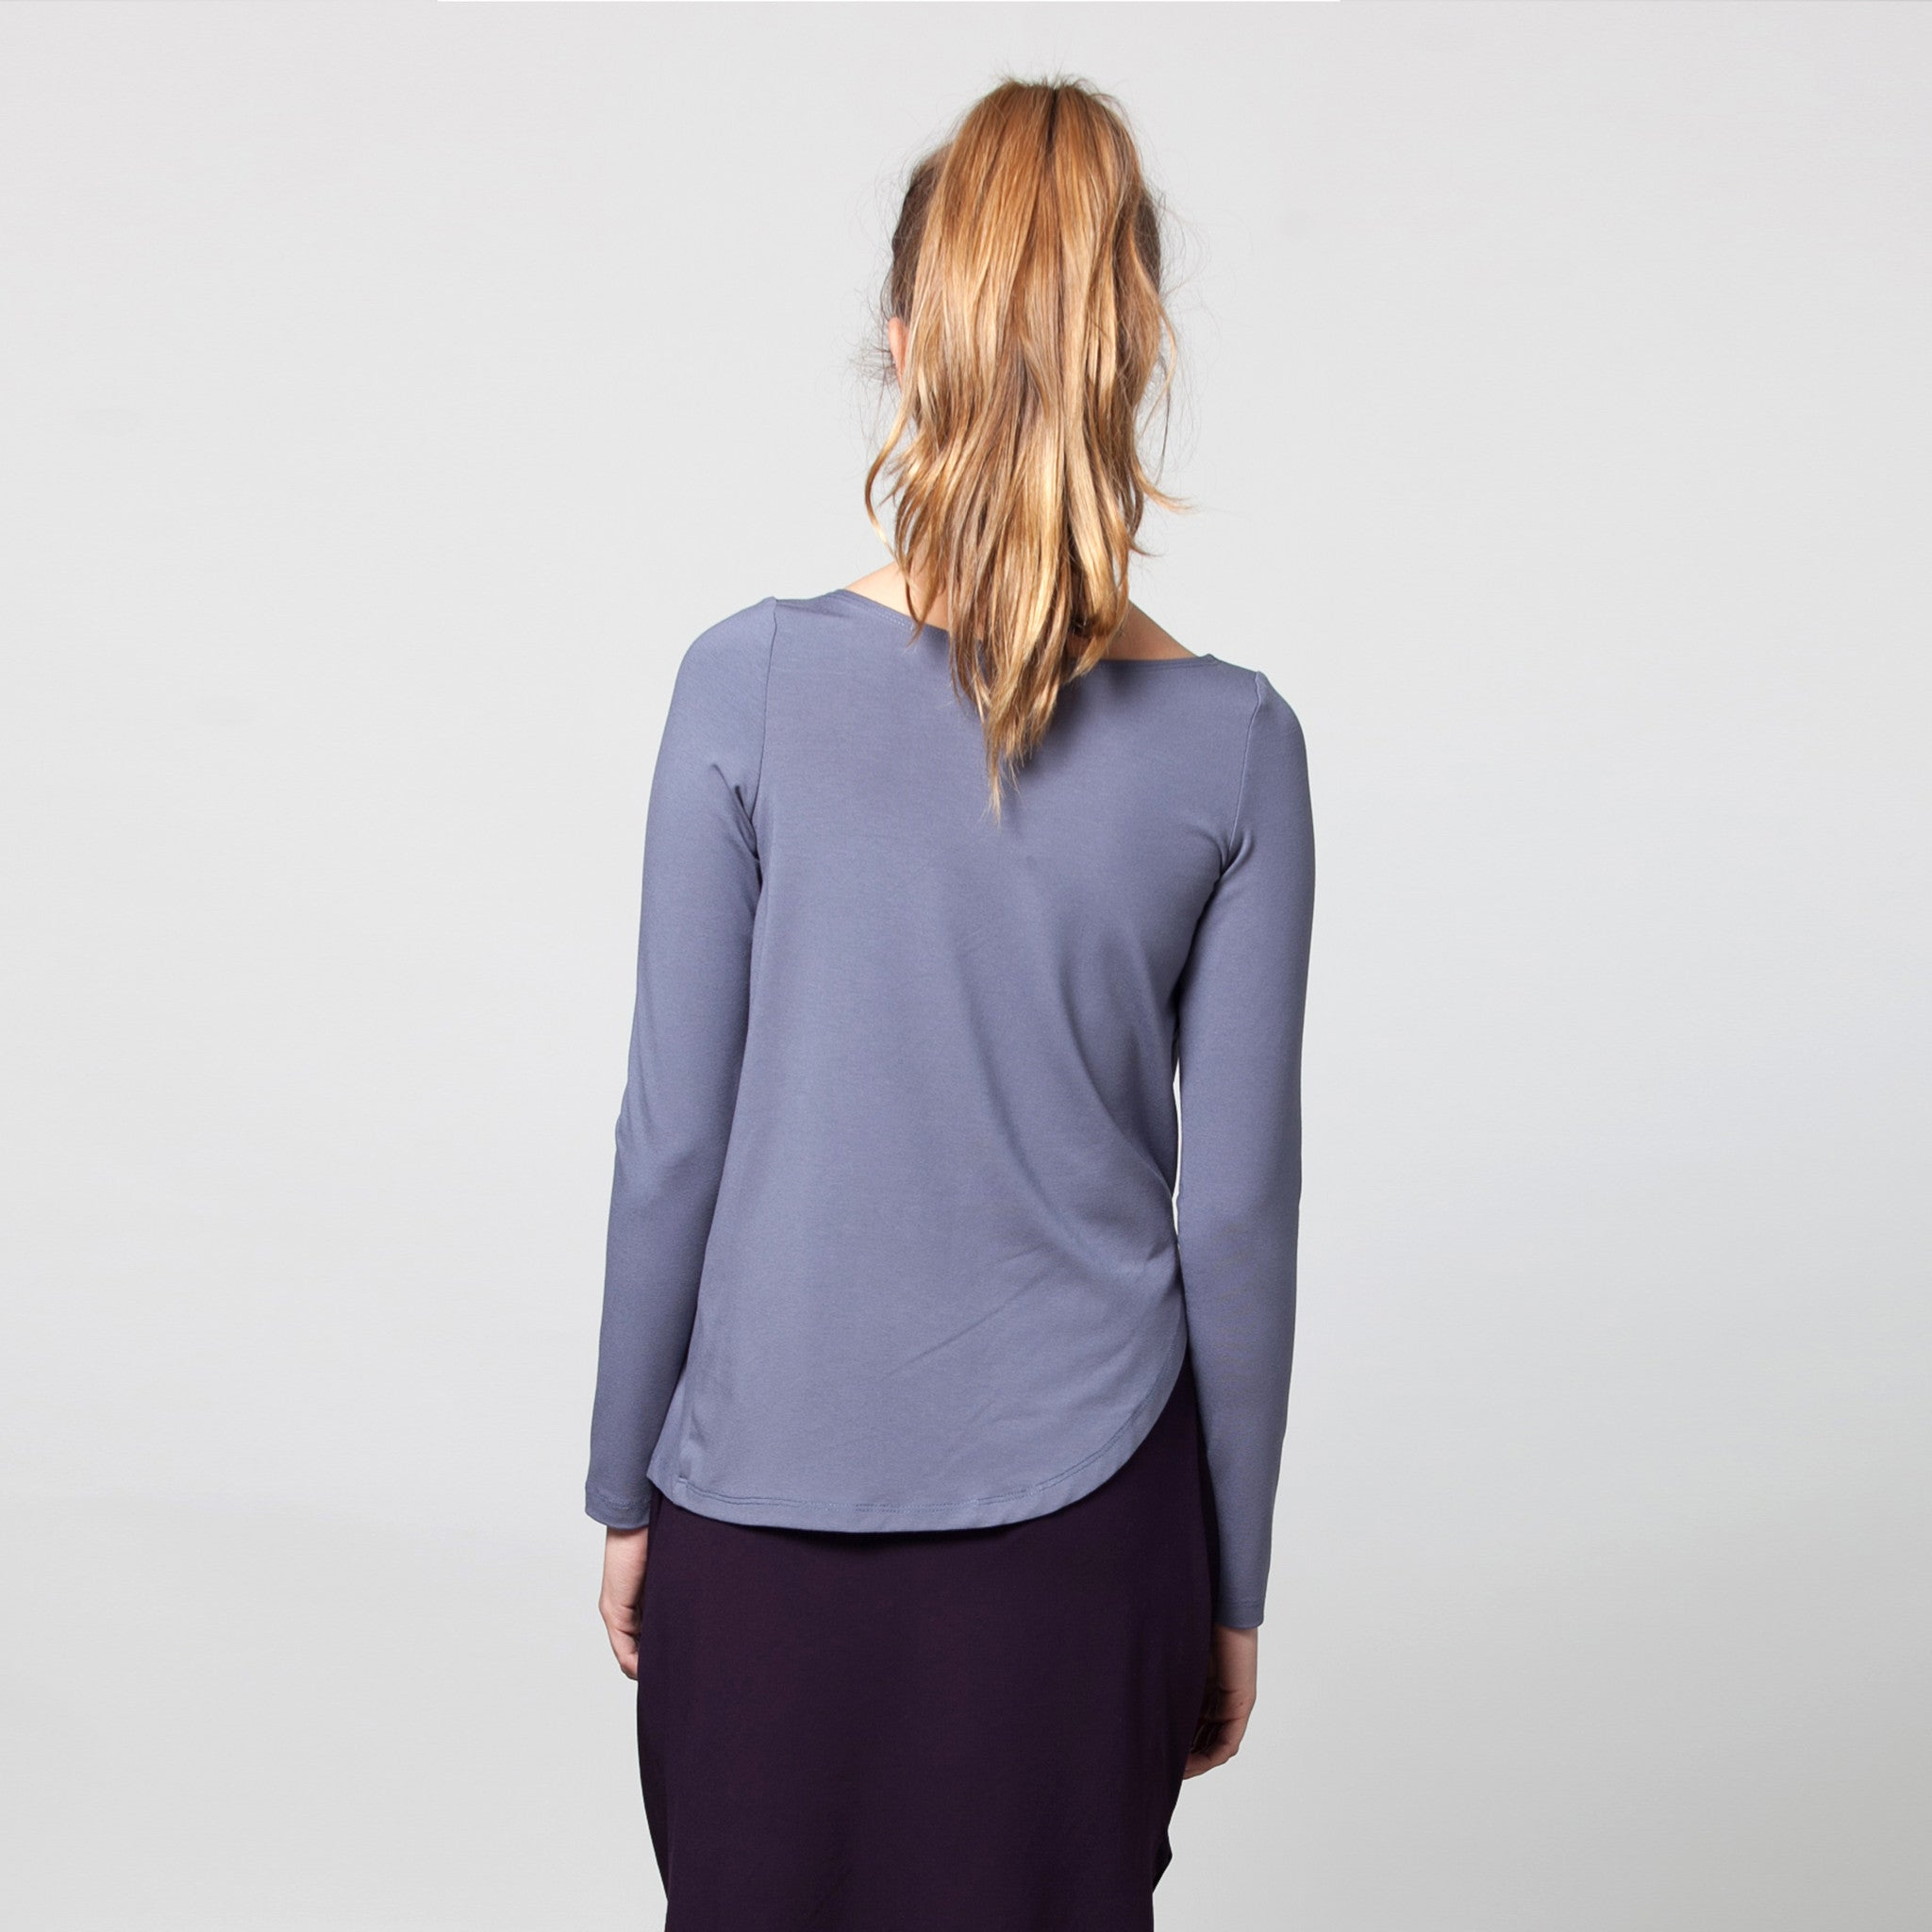 Sample sale- Long sleeve draped jersey top size S color purple grey - DuendeFashion  - 5